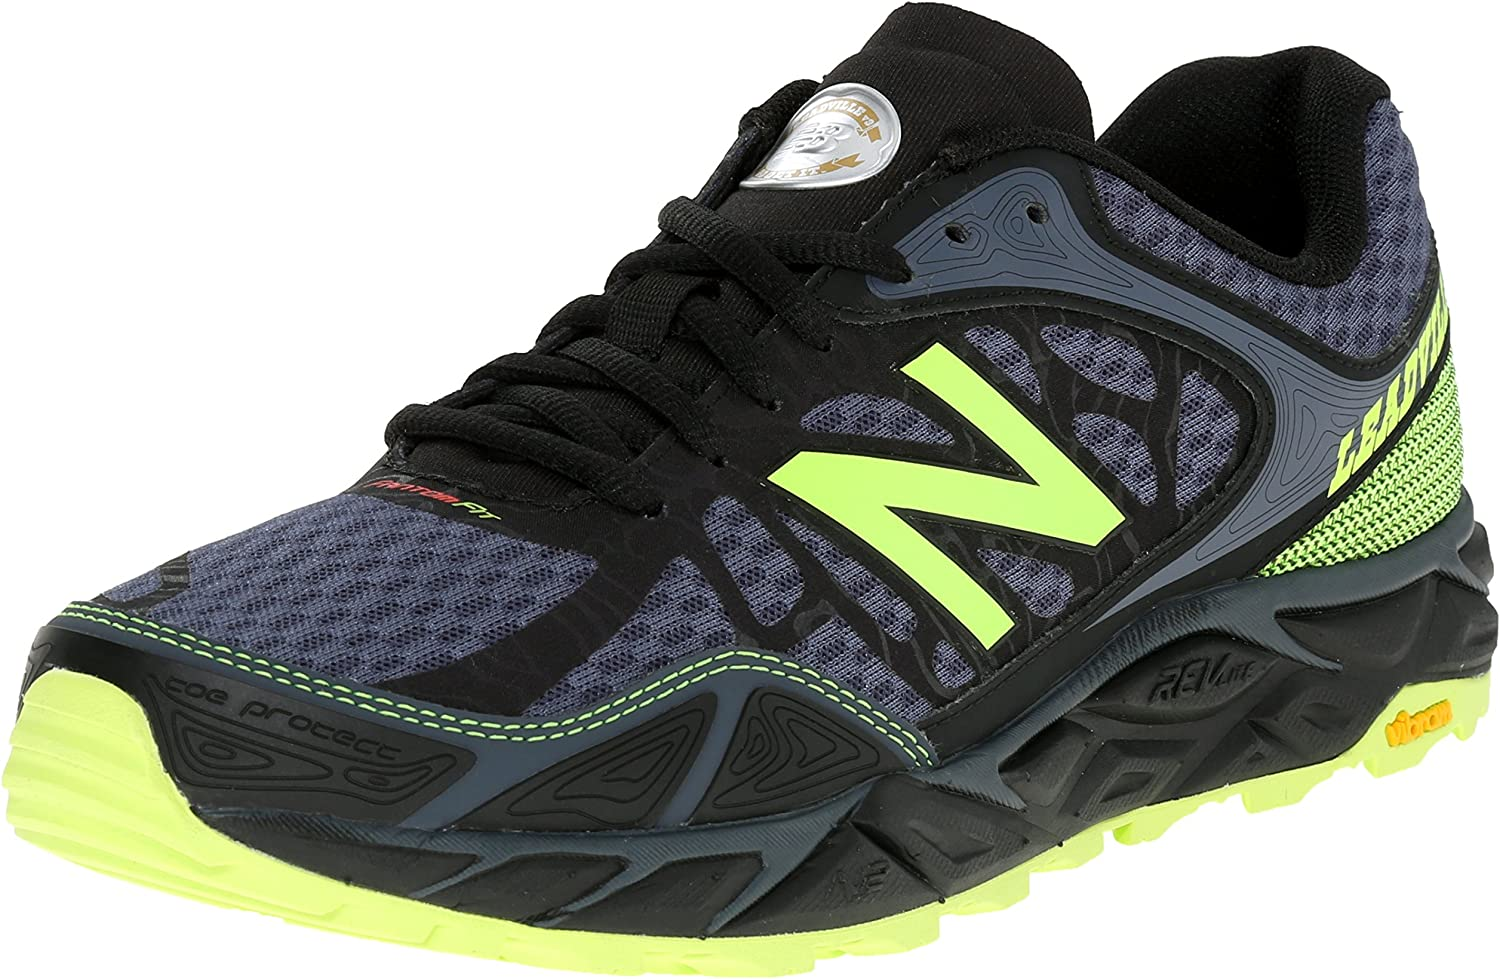 New Balance Men S Leadvillev3 Trail Shoe Trail Running